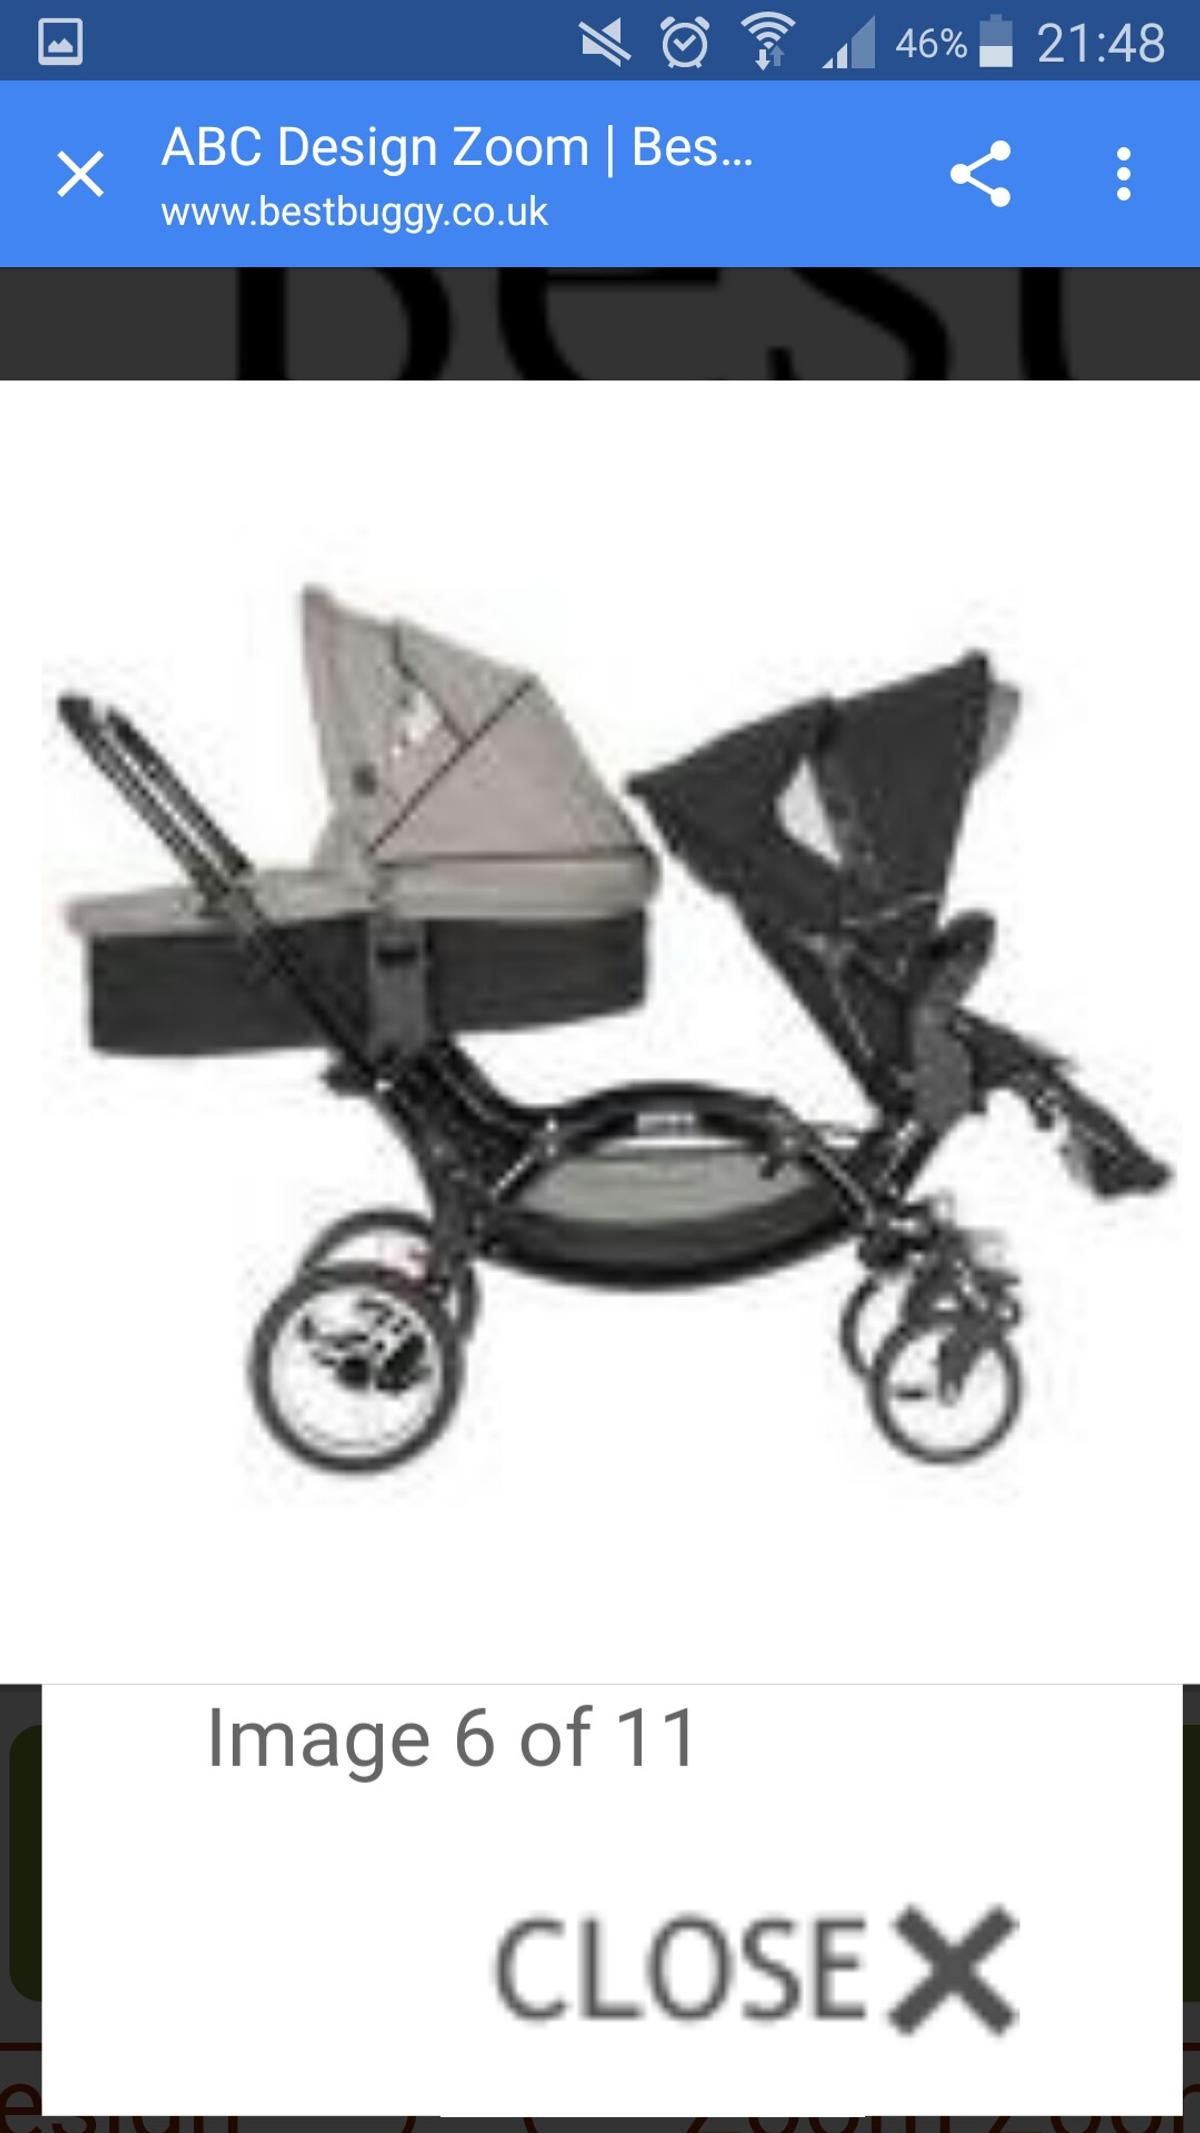 Buggy Abc Design Ersatzteile O Baby Abc Design Zoom Tandem Pram In Ll11 Wrexham For